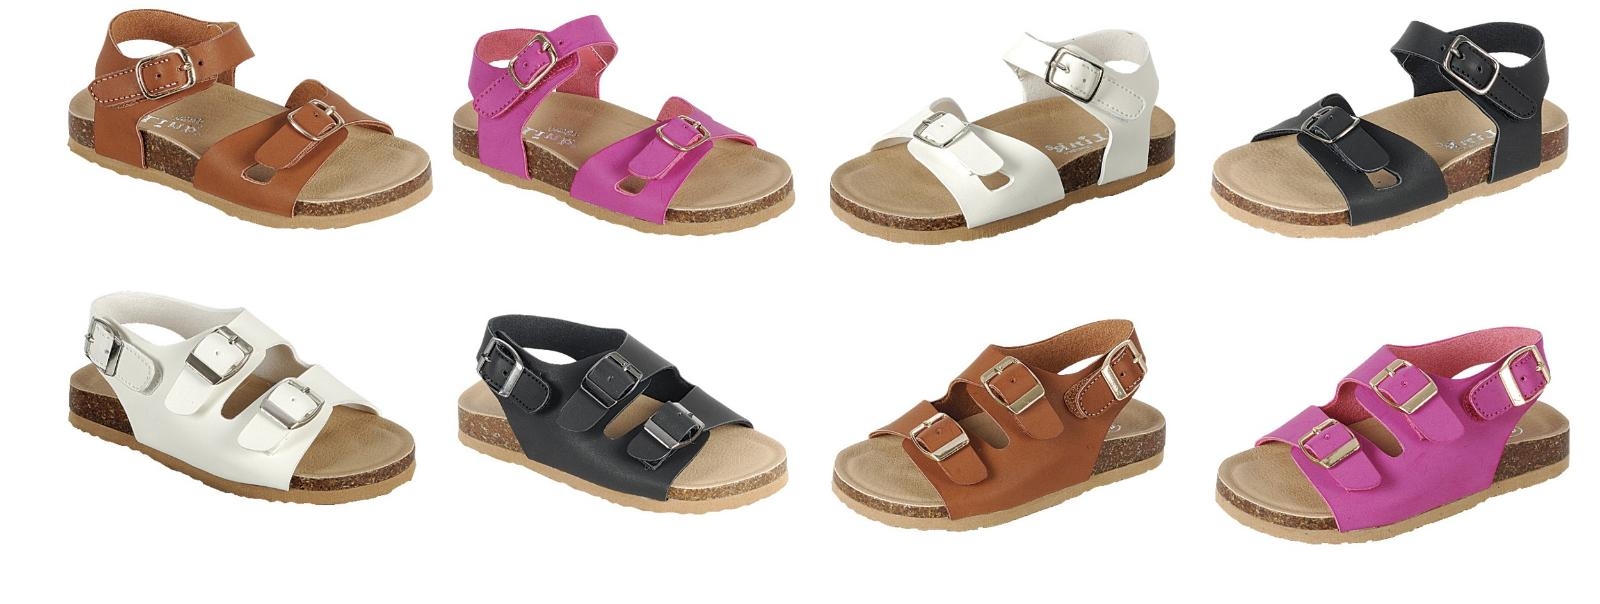 Baby -Strap Open Sandals Shoes